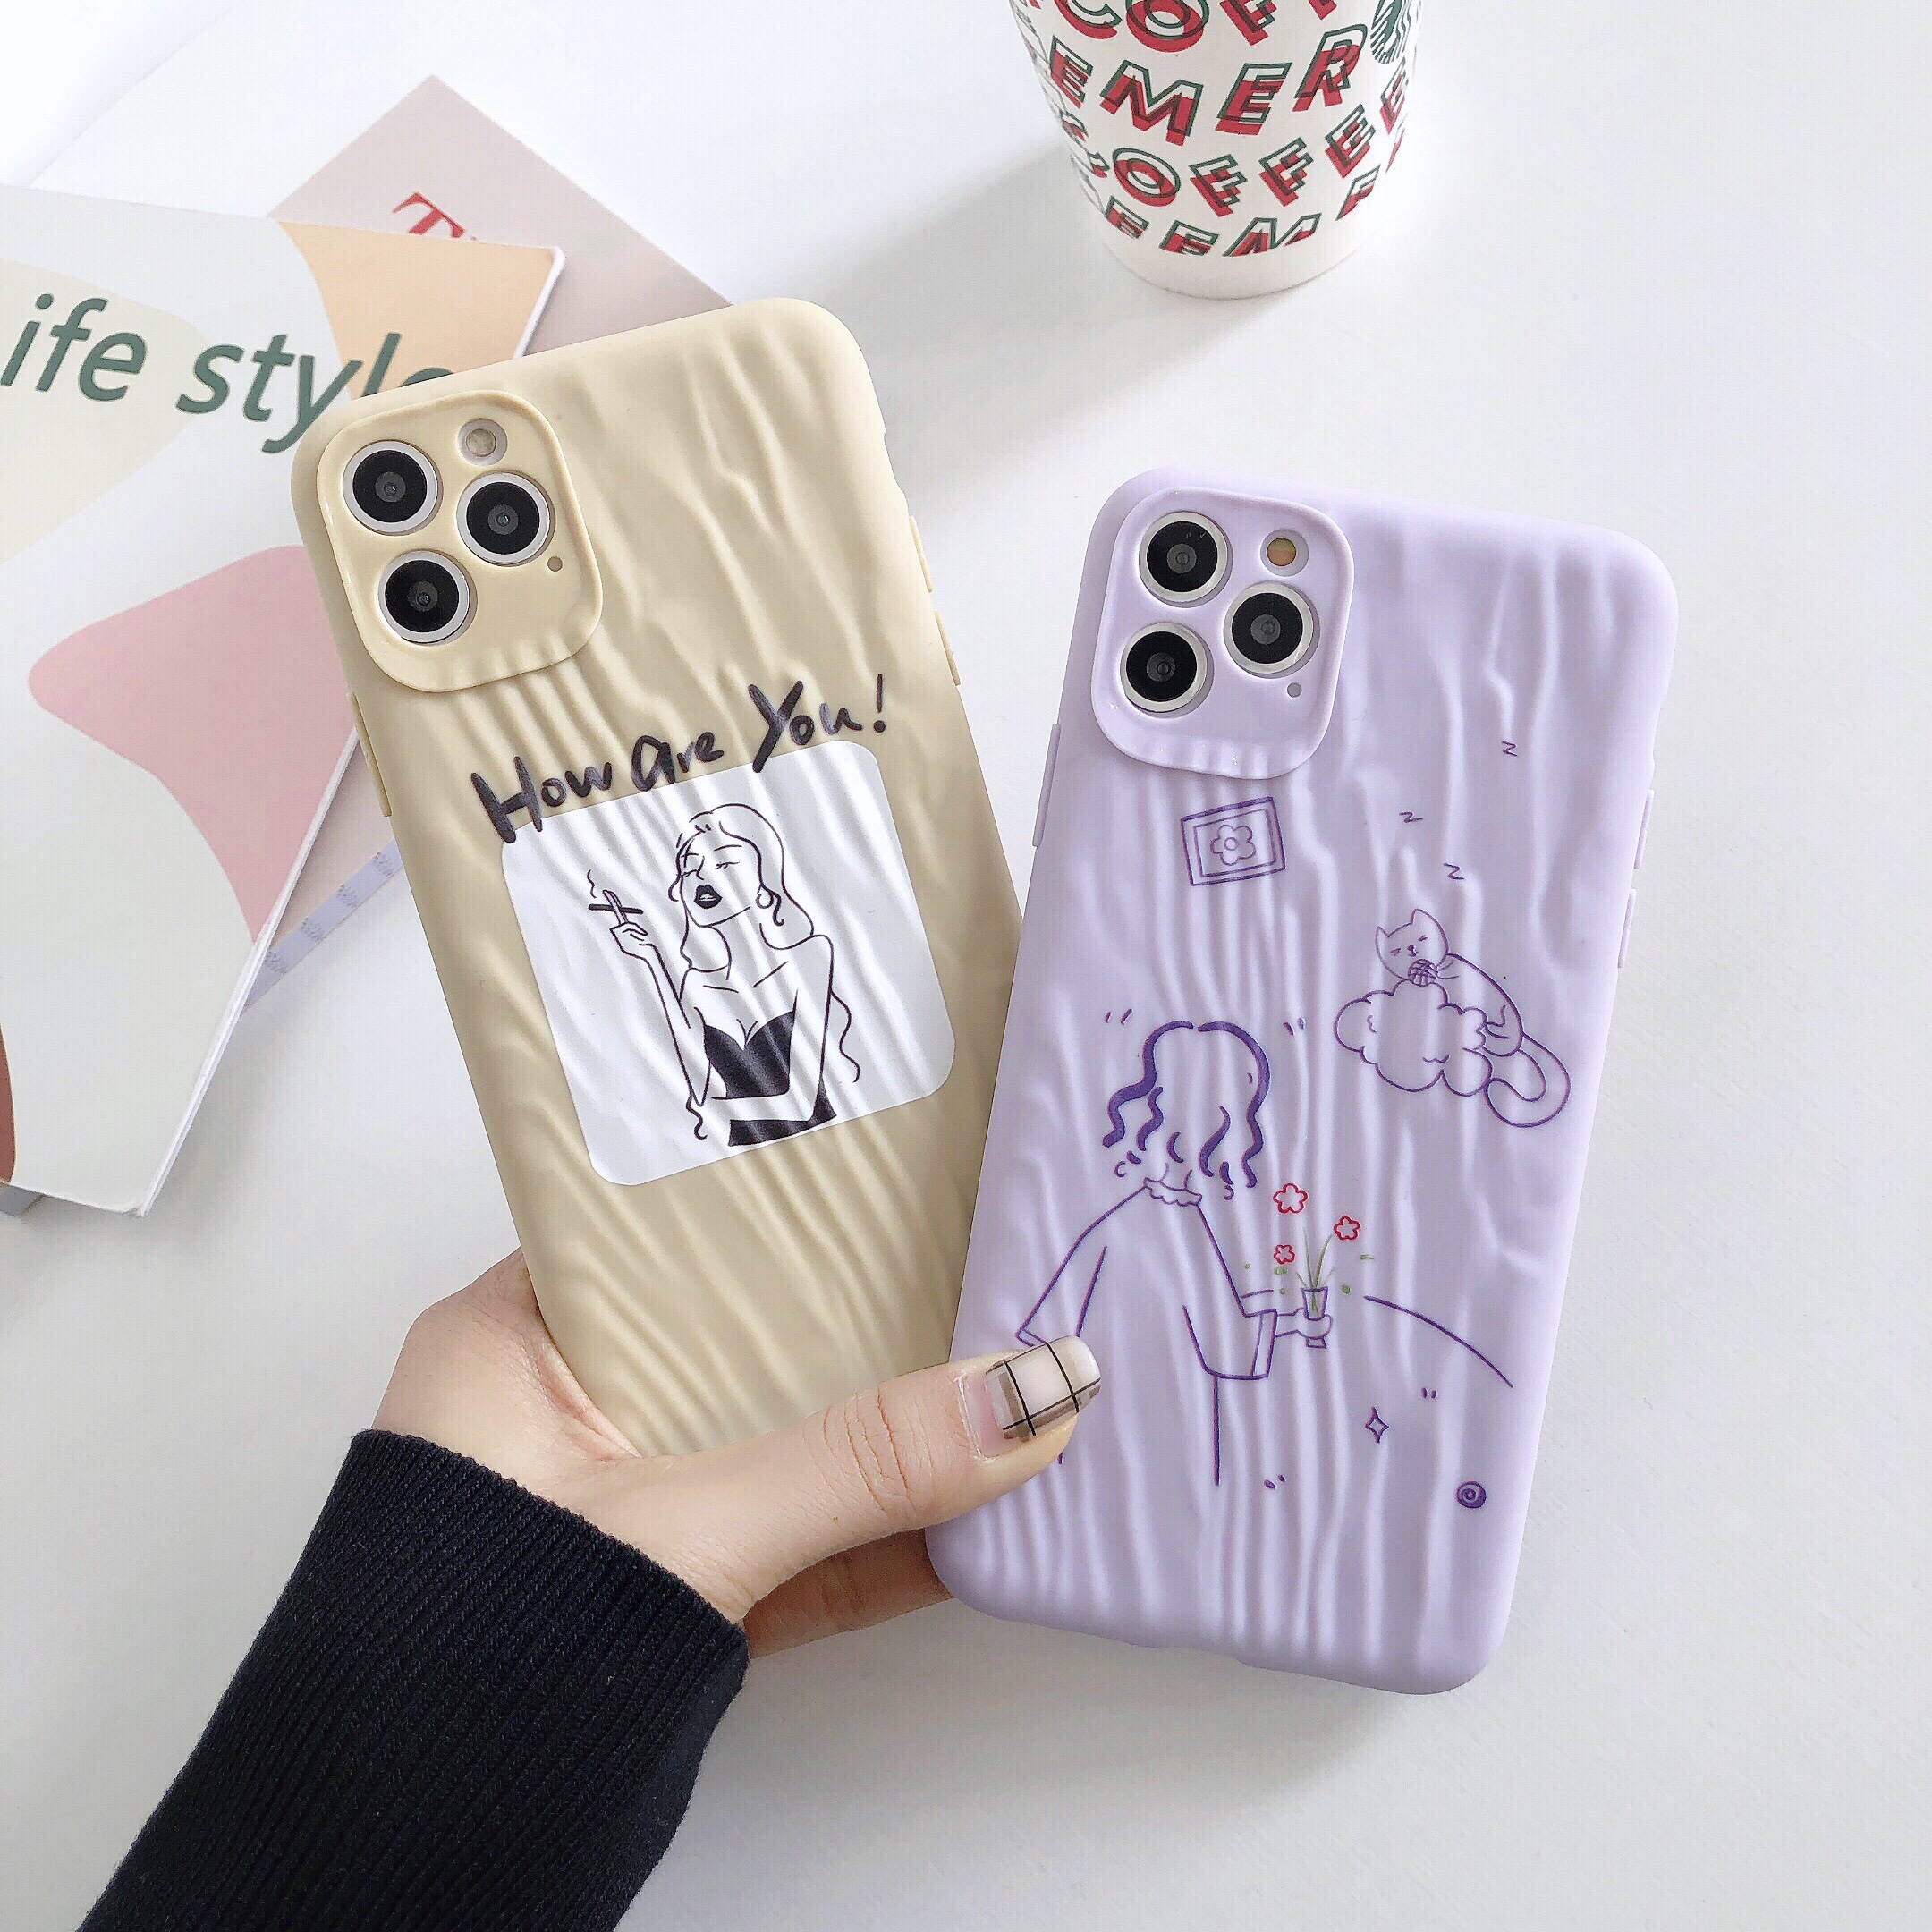 Free Shipping For <font><b>Oppo</b></font> A57 A73 A79 A83 R15 R17 Reno phone <font><b>case</b></font> A9 <font><b>2020</b></font> <font><b>A5</b></font> <font><b>2020</b></font> Cartoon <font><b>Case</b></font> A11x F11 A3s A5s A7x F9 K5 Frosted image